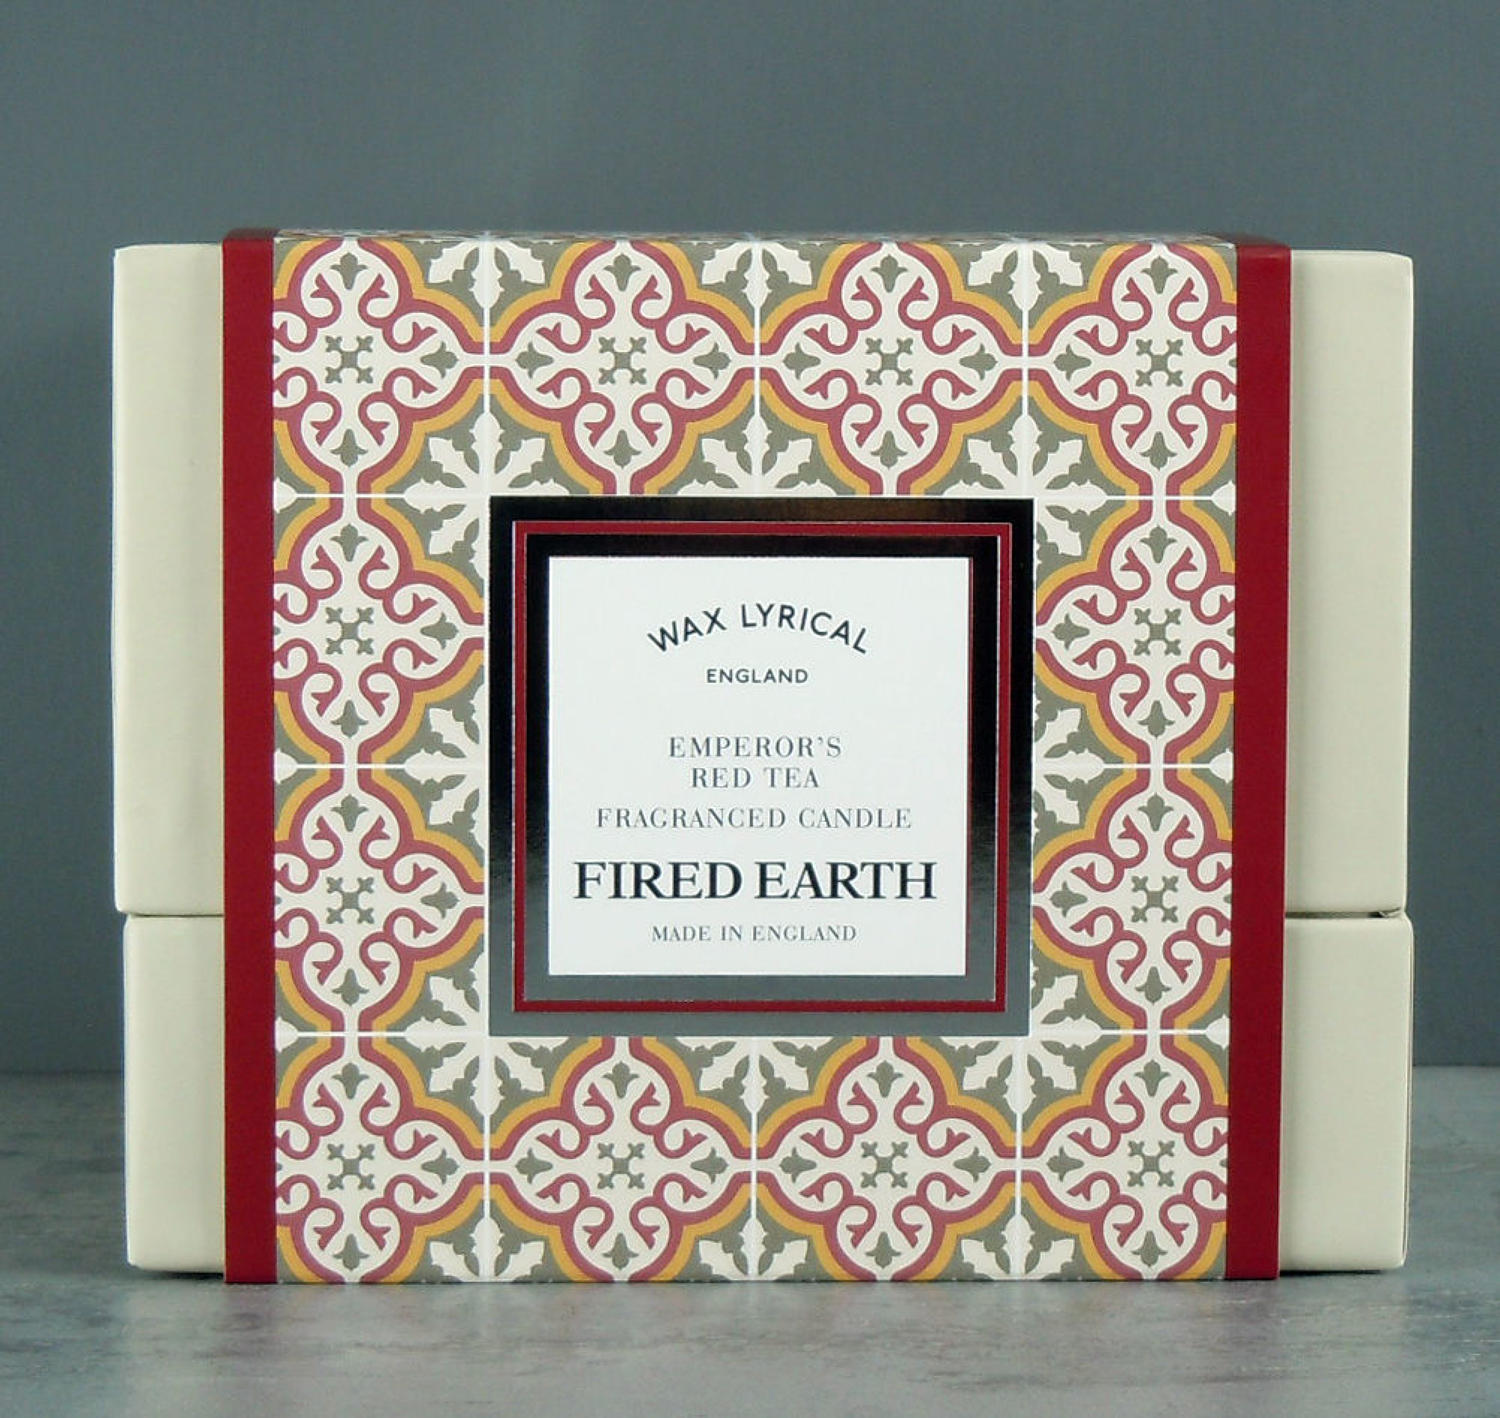 Wax Lyrical Fired Earth Emperors Red Tea Ceramic twin wick Candle